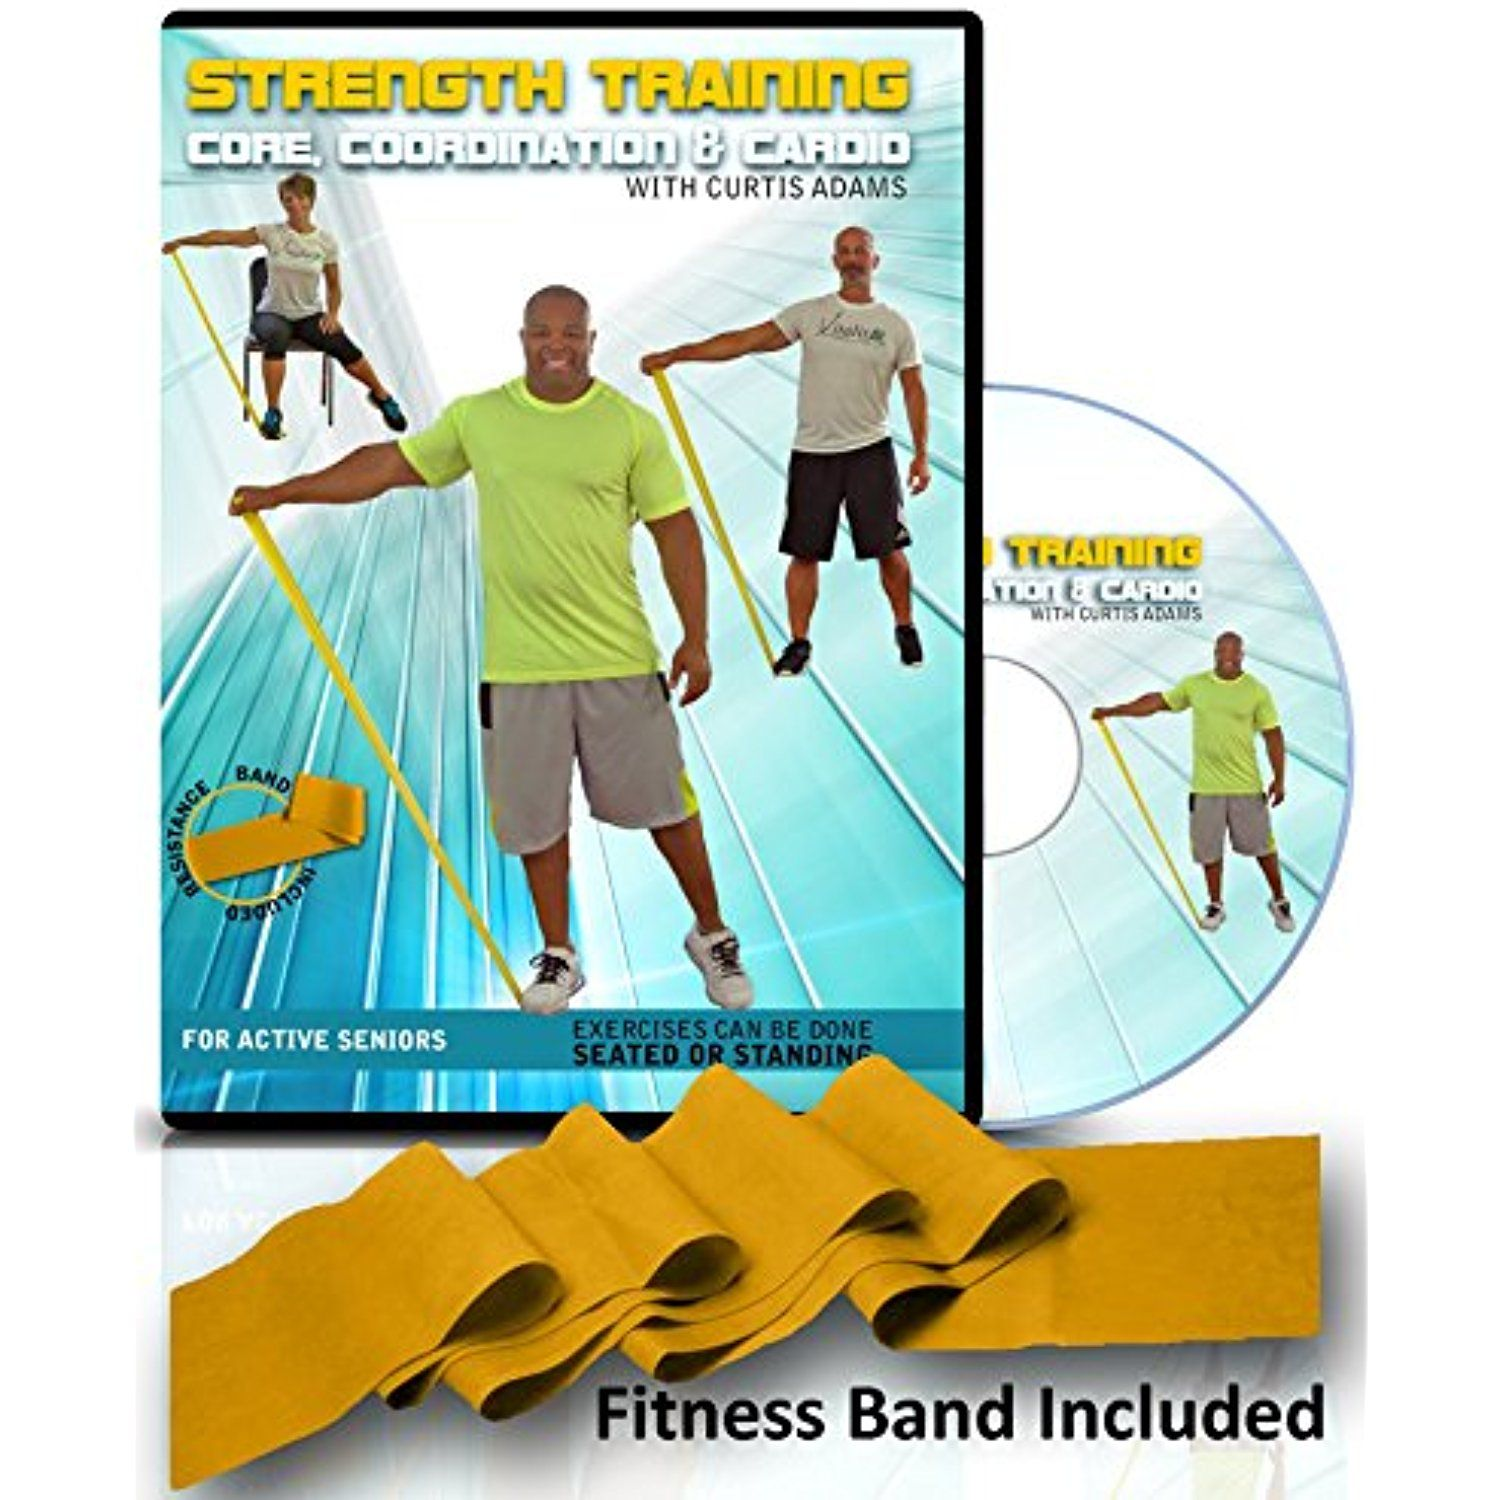 Senior Exercise Video Fitness Dvd Strength Training Core Coordination Exercisefitness Senior Fitness Aerobics Workout Workout Book